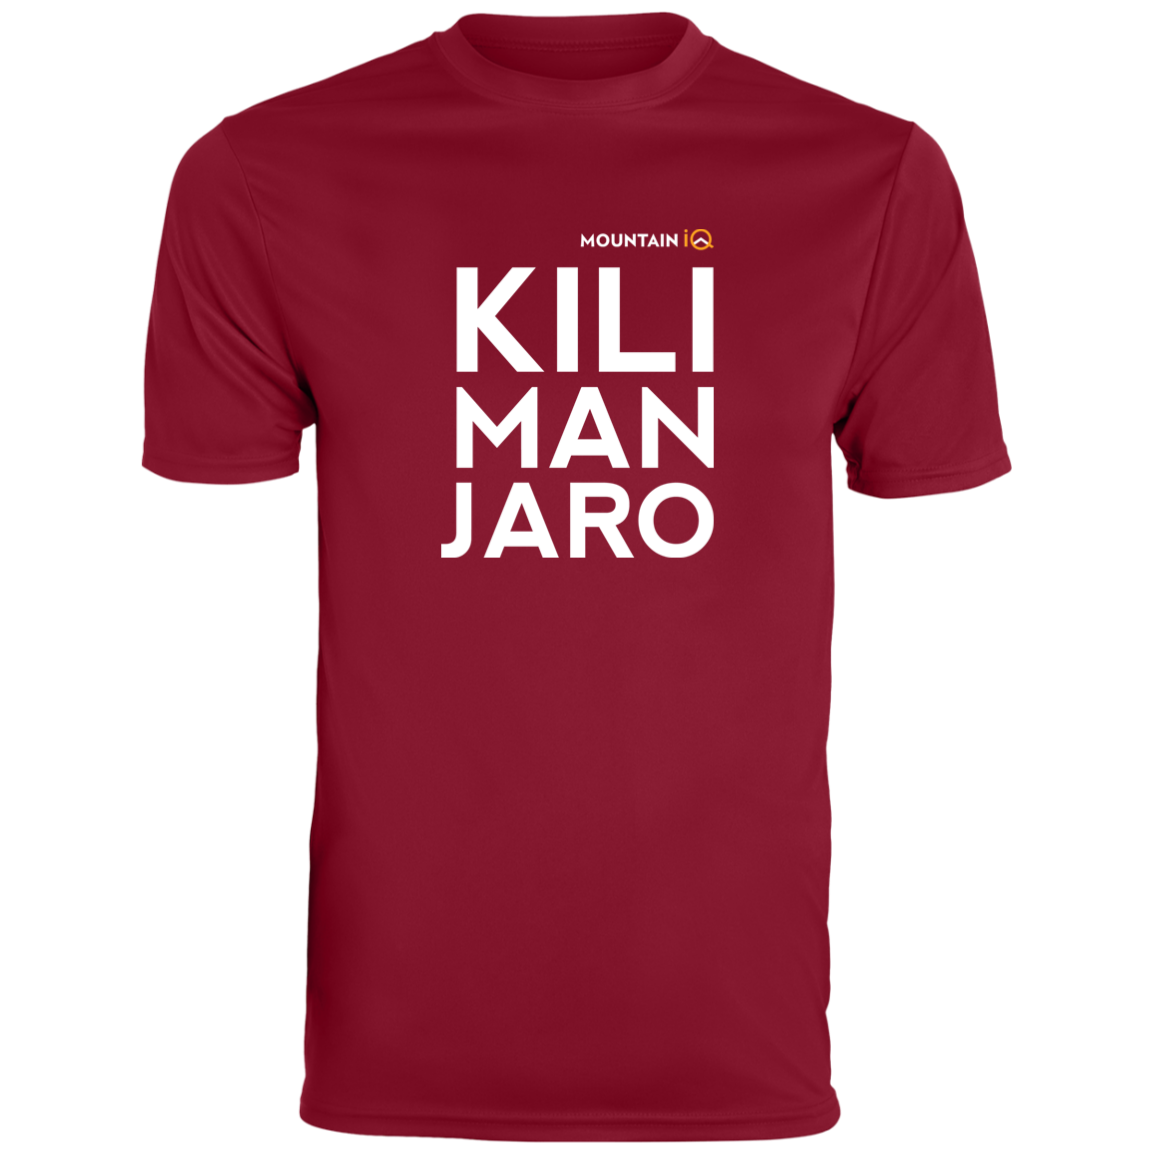 Kilimanjaro Mens T-Shirt Maroon MountainIQ